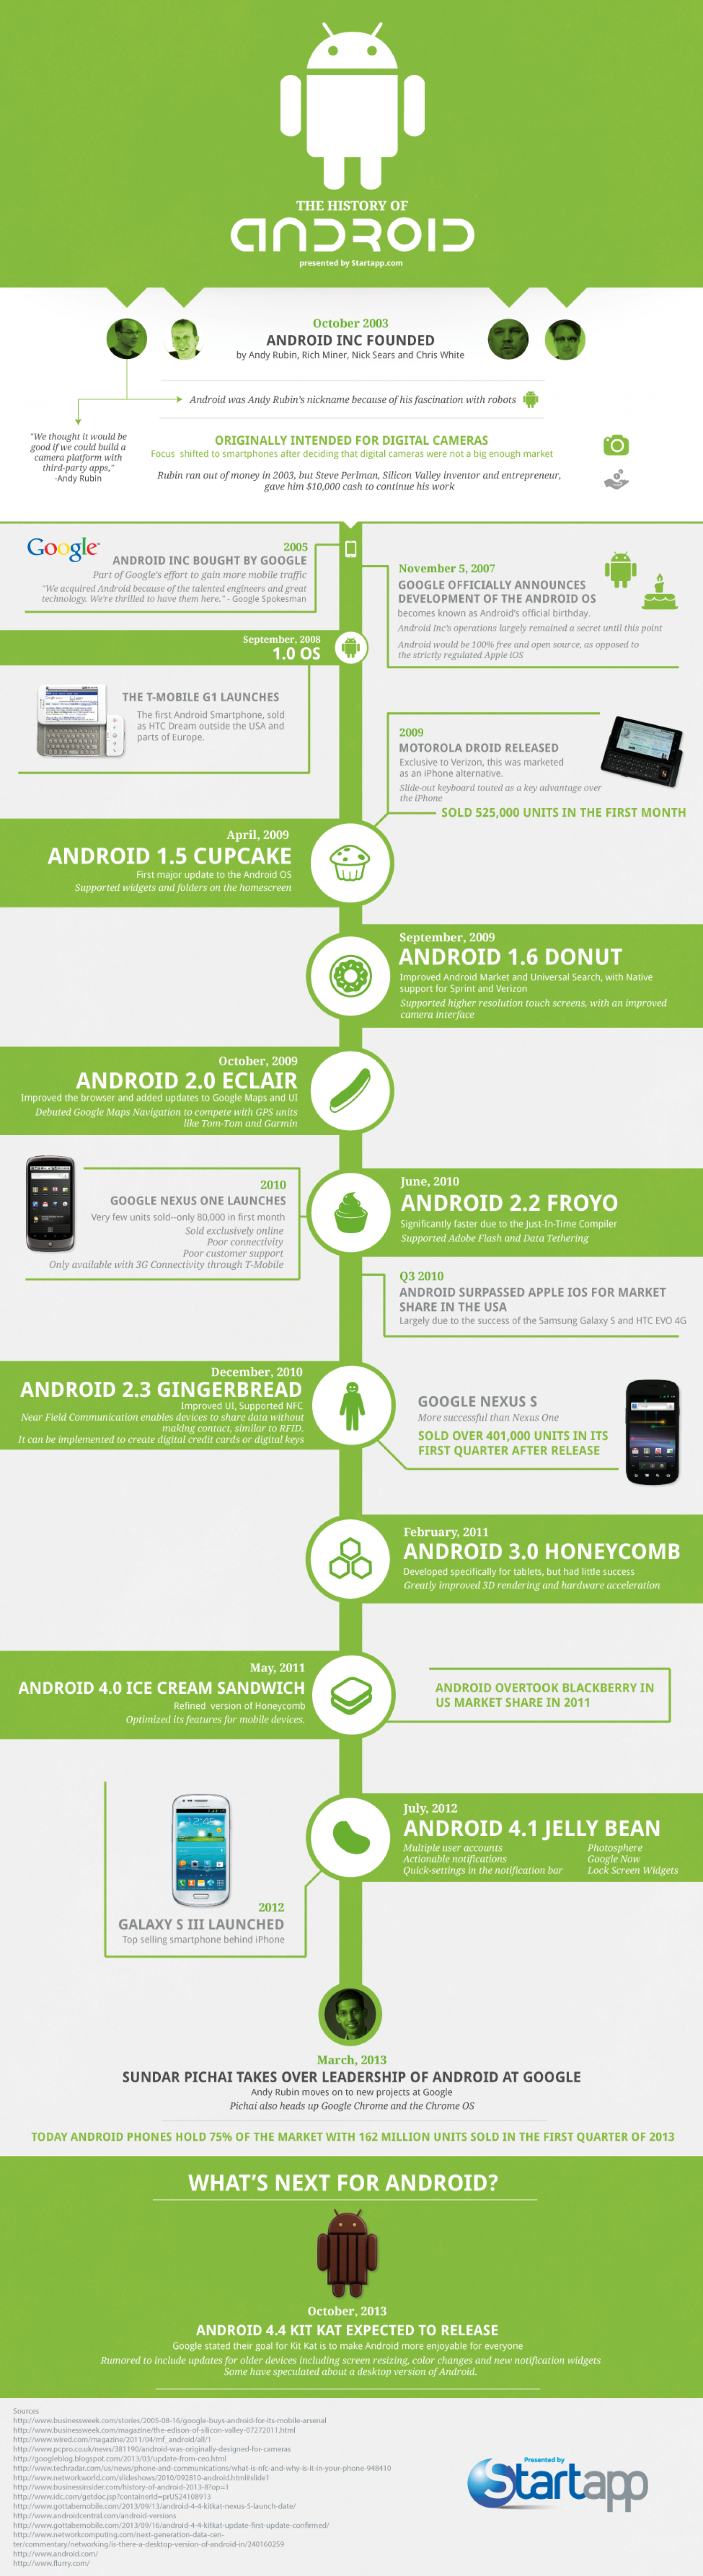 The History of Android Infographic